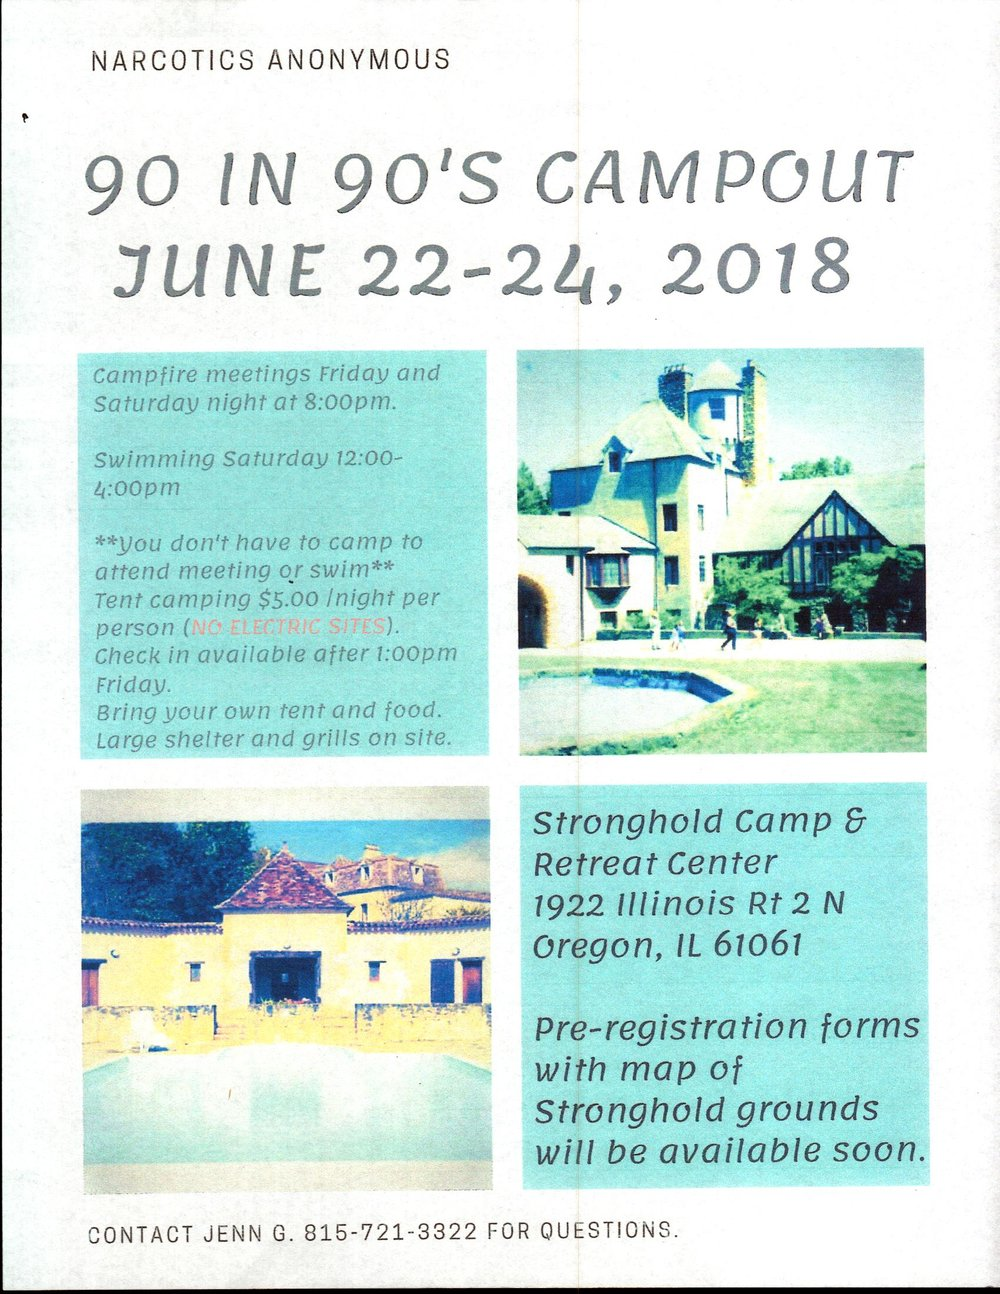 90in90Campout.jpg